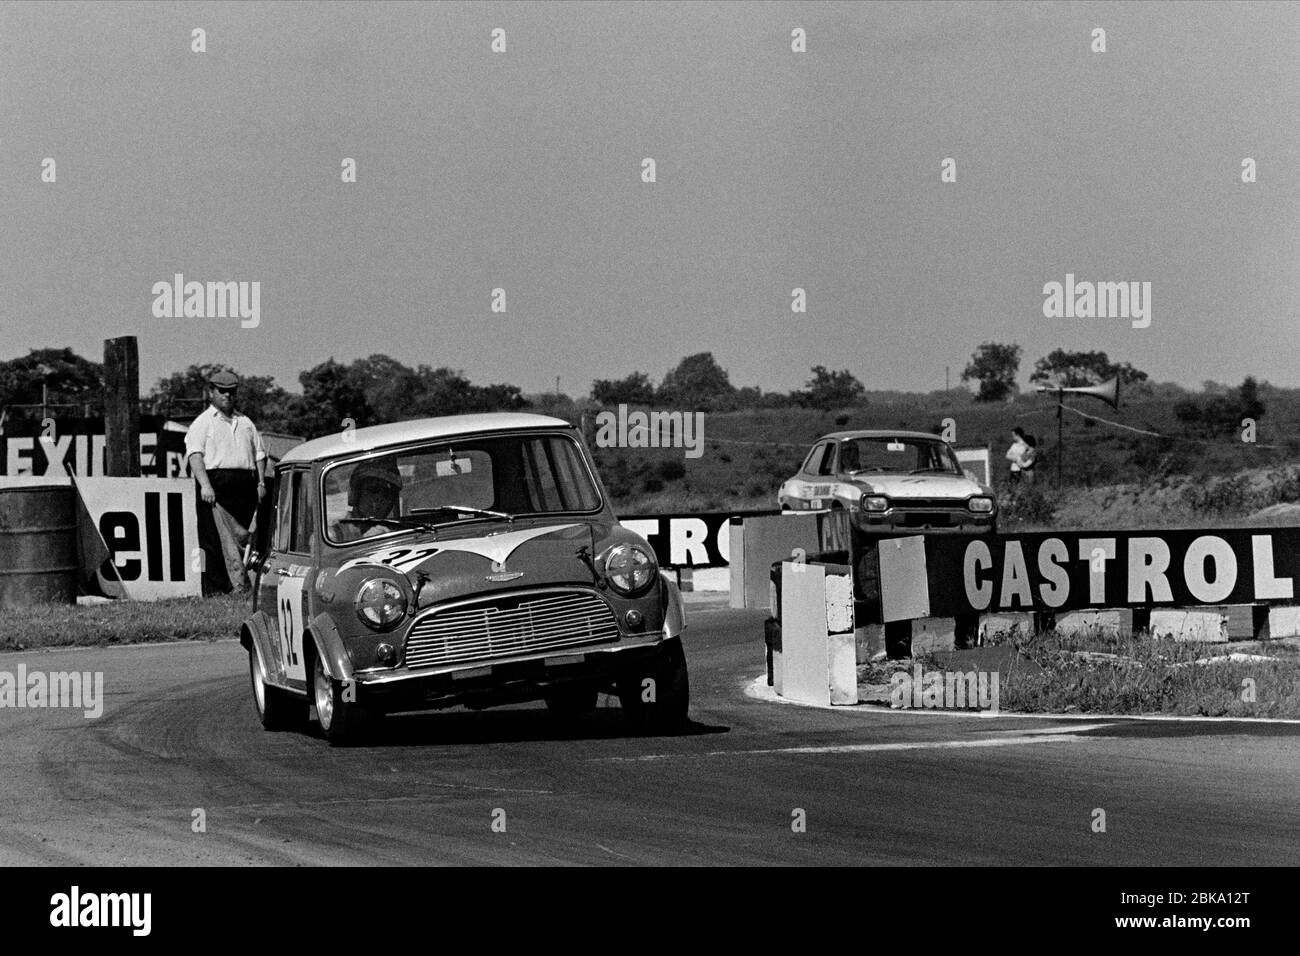 Barrie 'Whizzo' Williams in saloon car action at Croft in 1969. Stock Photo